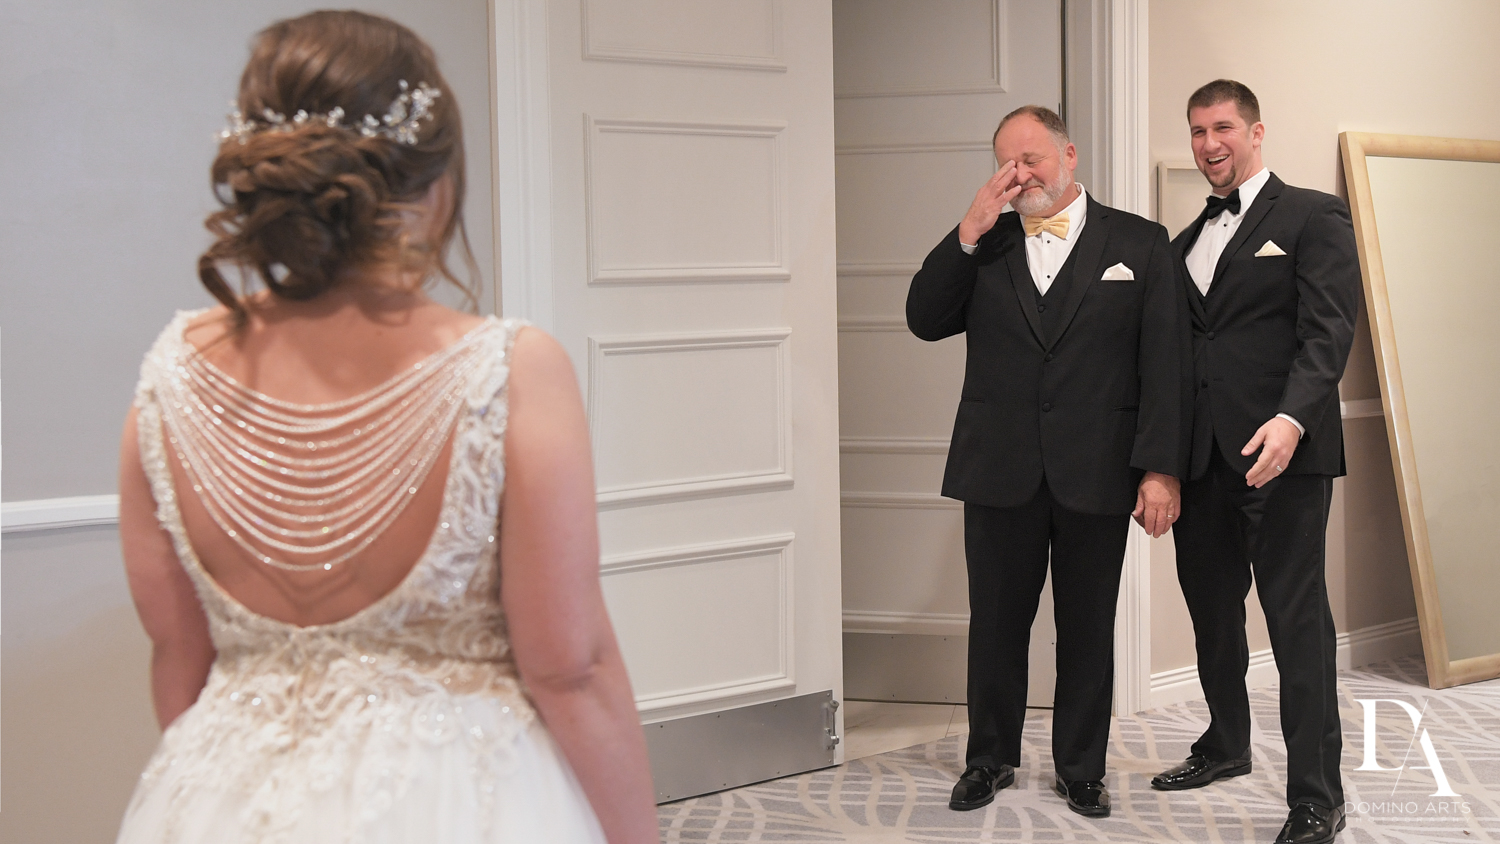 Dad and daughter first look at Romantic Outdoors Wedding at Woodfield Country Club in Boca Raton, Florida